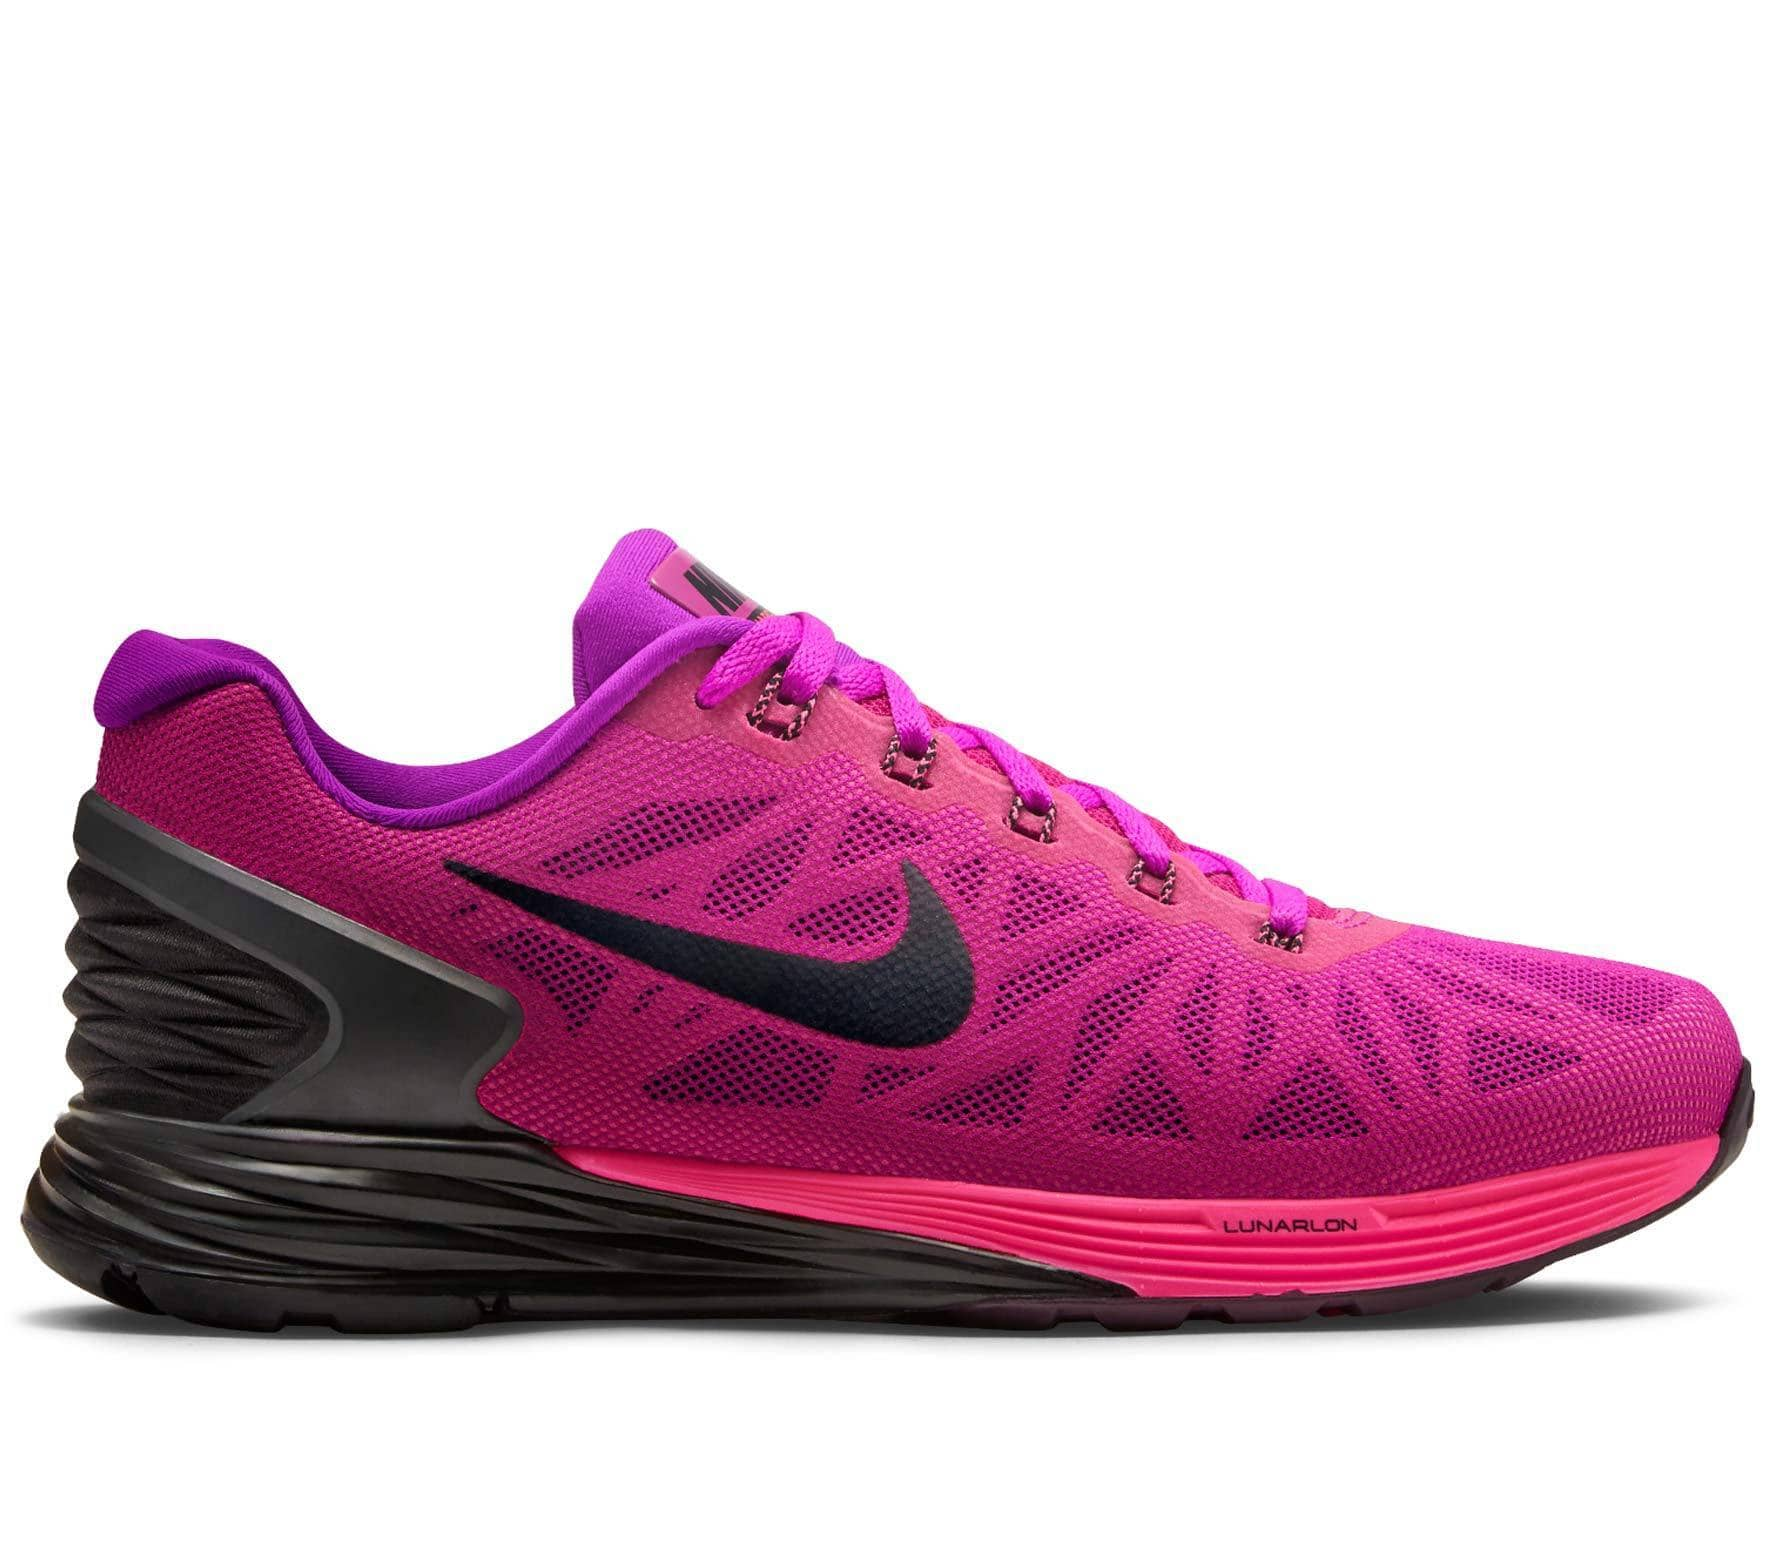 timeless design 6afc0 45809 Nike - Lunarglide 6 women s running shoes (purple pink)